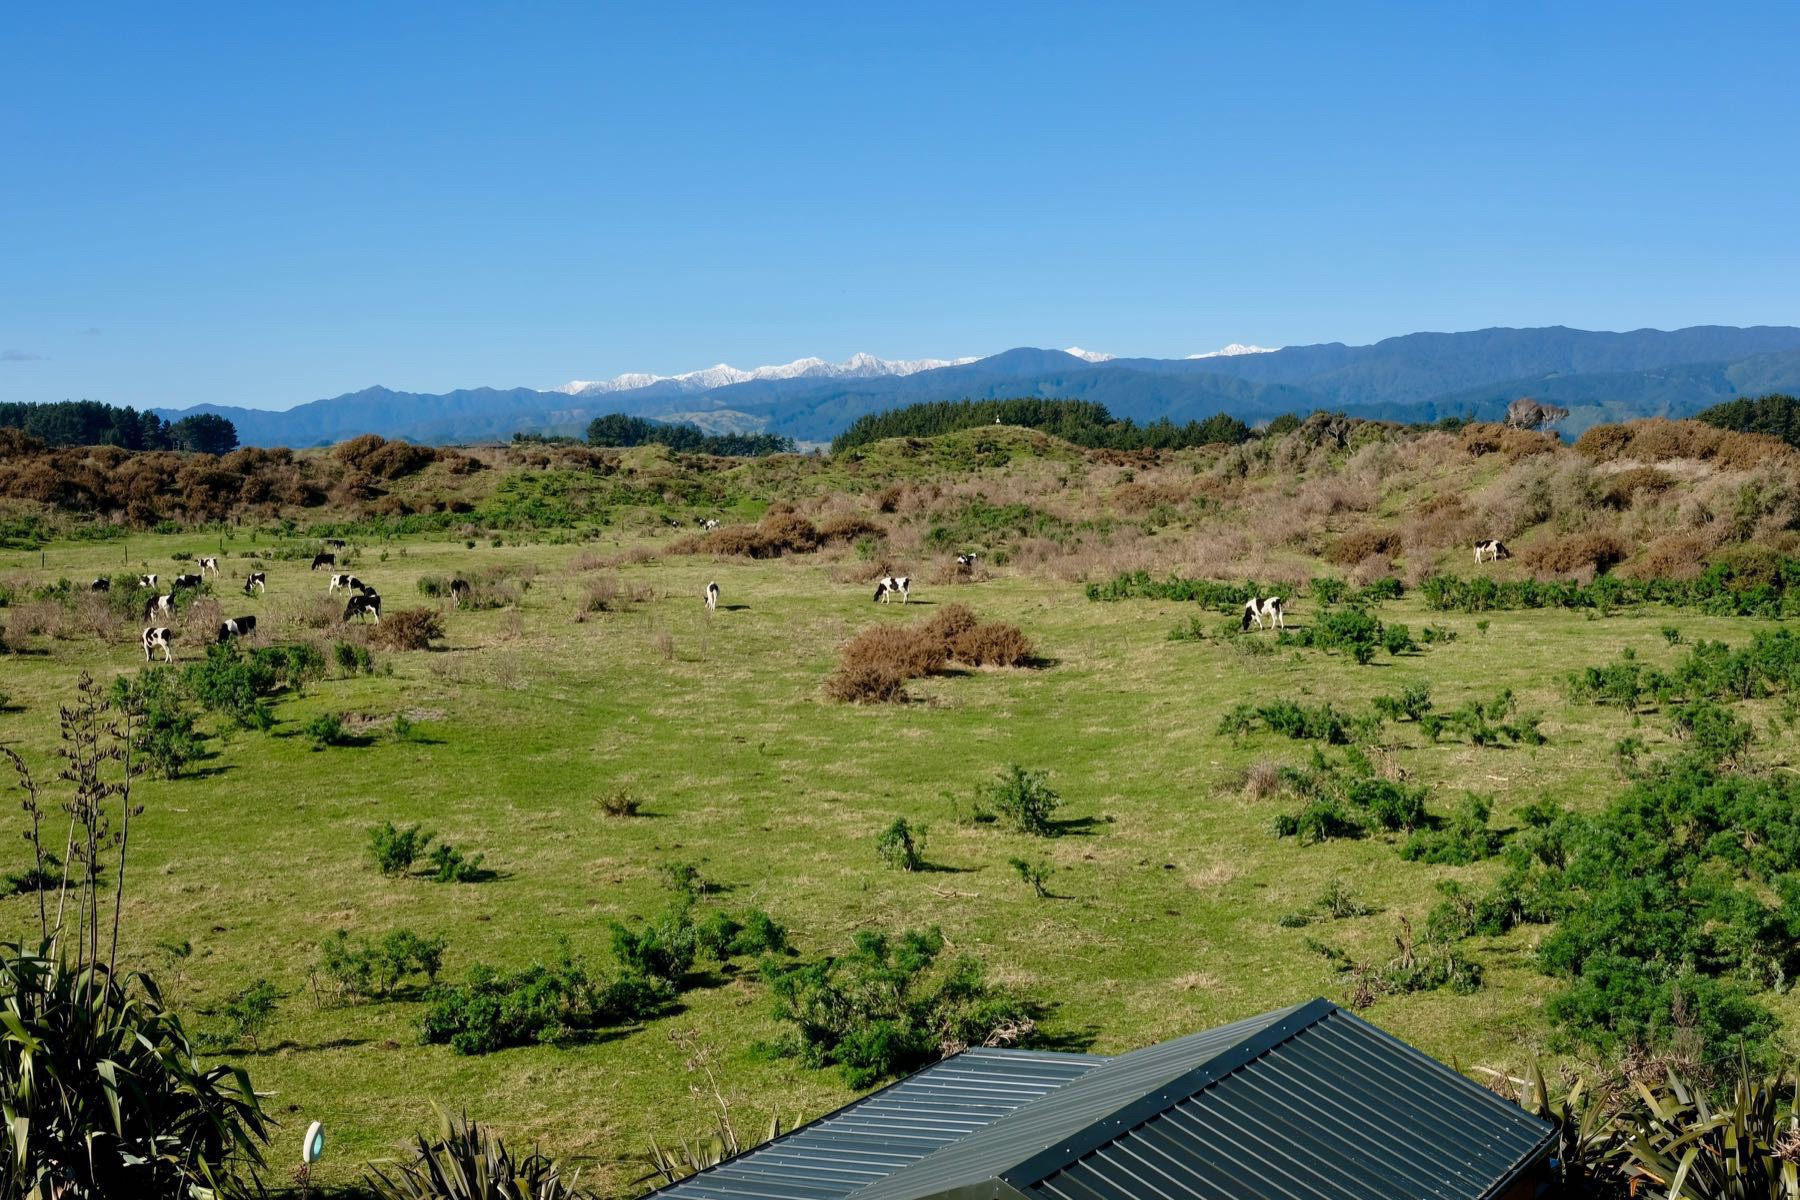 Cows grazing on green pasture with snowy peak mountains in the background.